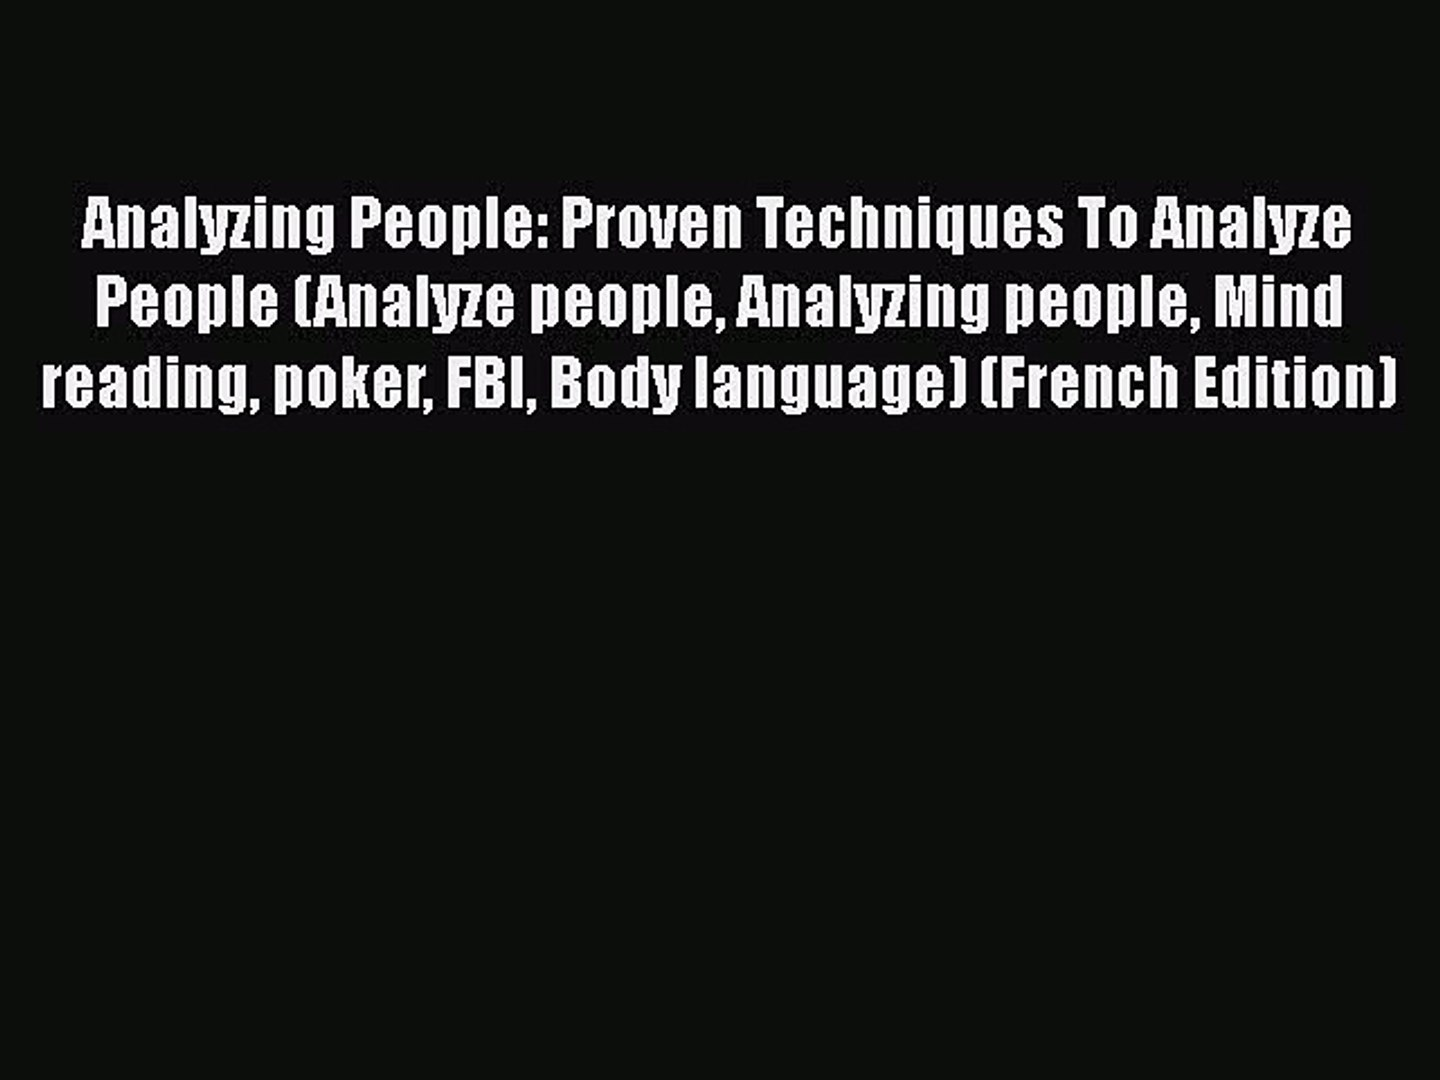 Read Analyzing People: Proven Techniques To Analyze People (Analyze people Analyzing people